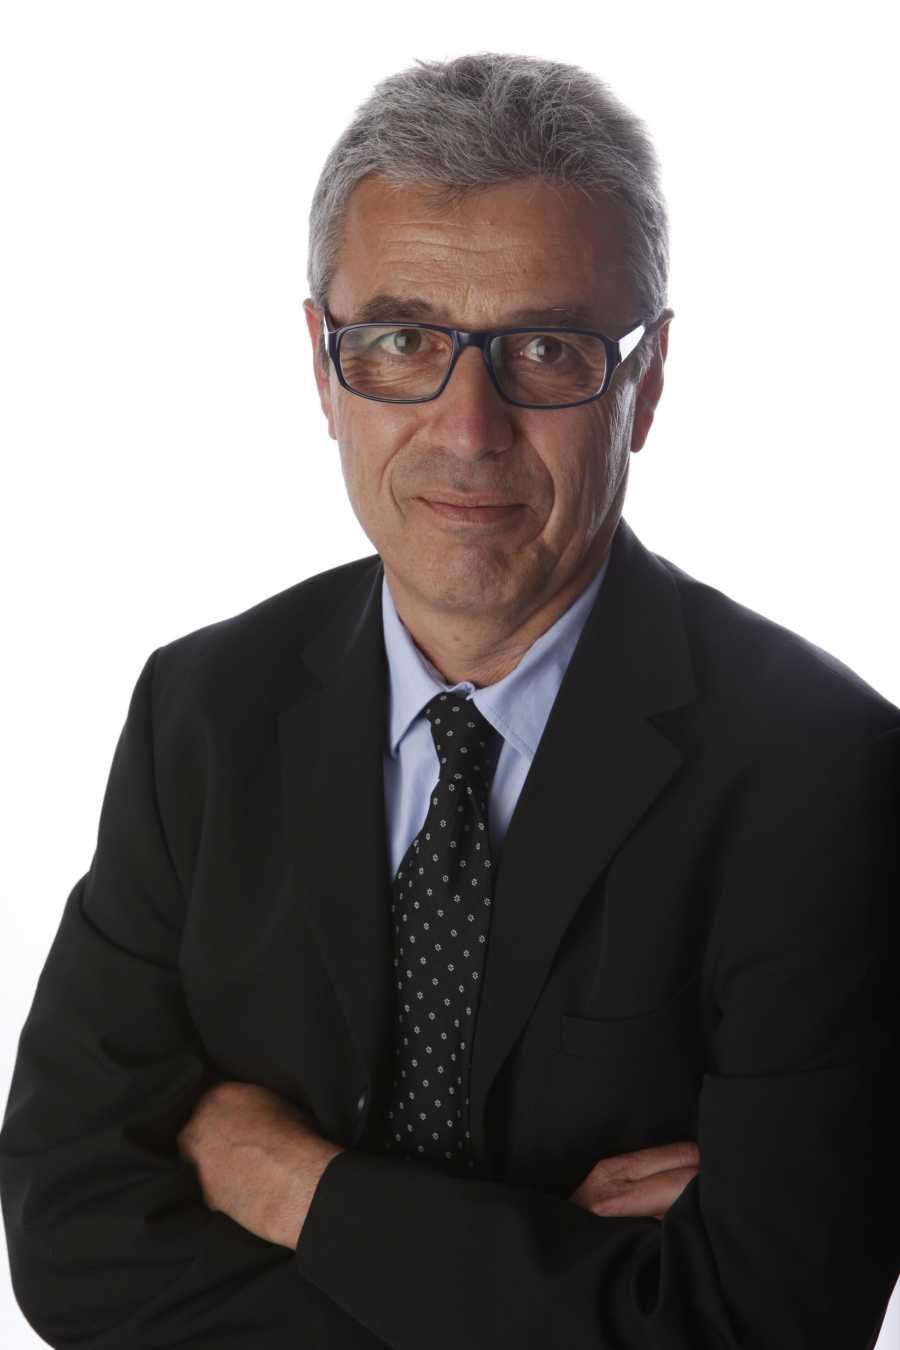 Portrait Jean-Claude Duchayne, Managing director and CFO. Has previously served as CFO in various companies of the semiconductor industry including groups of SMEs, Jipelec and Qualiflow.